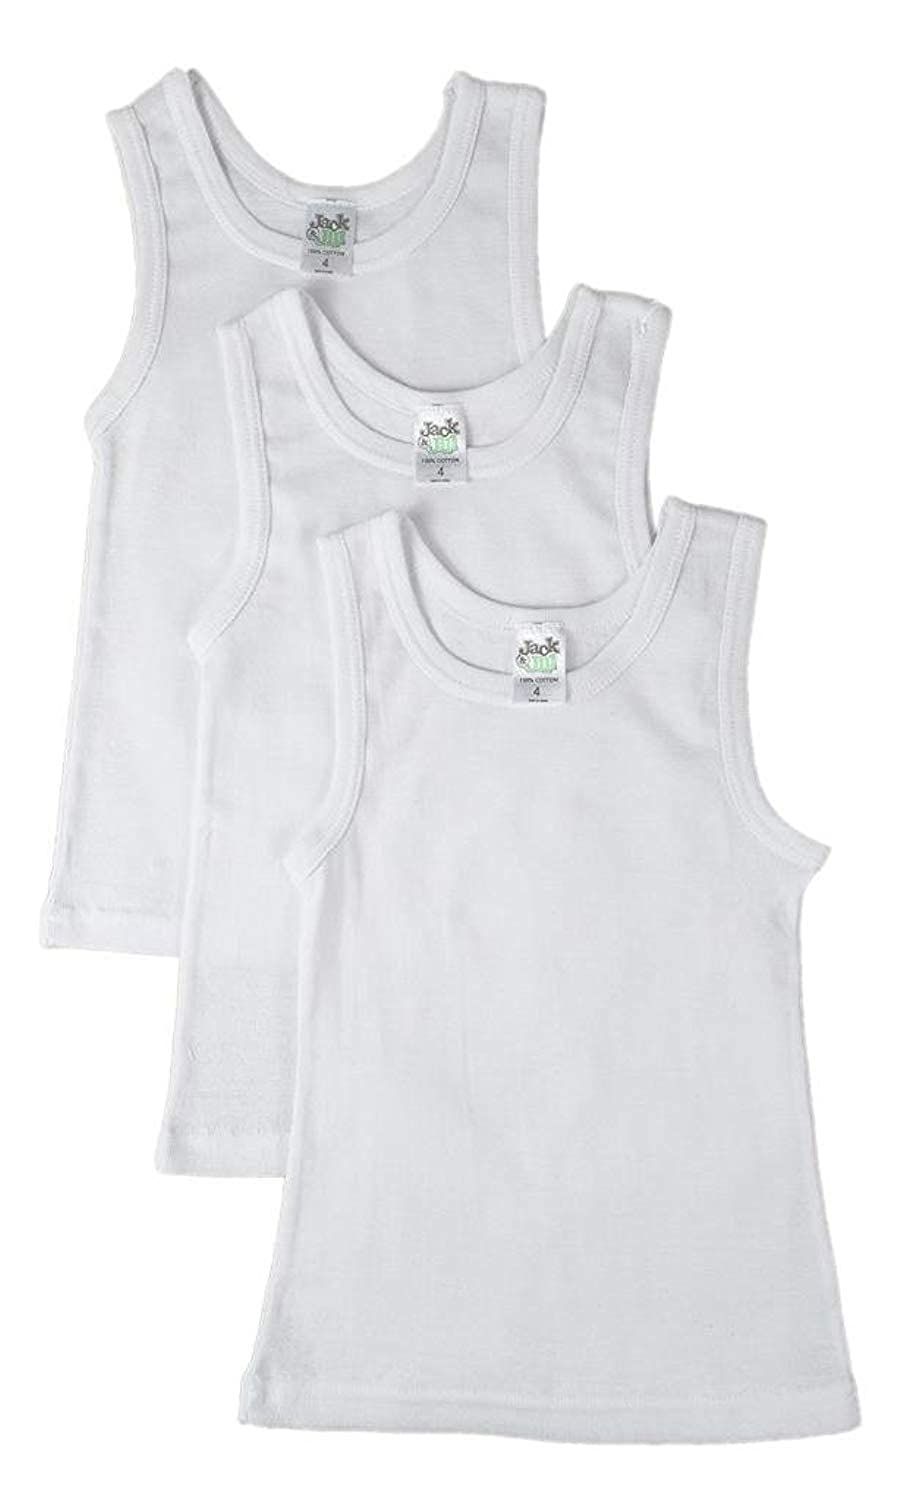 Jack 'n Jill Boys 100% Combed Cotton Undershirt In Solid White (3 Pack) Size 18 902